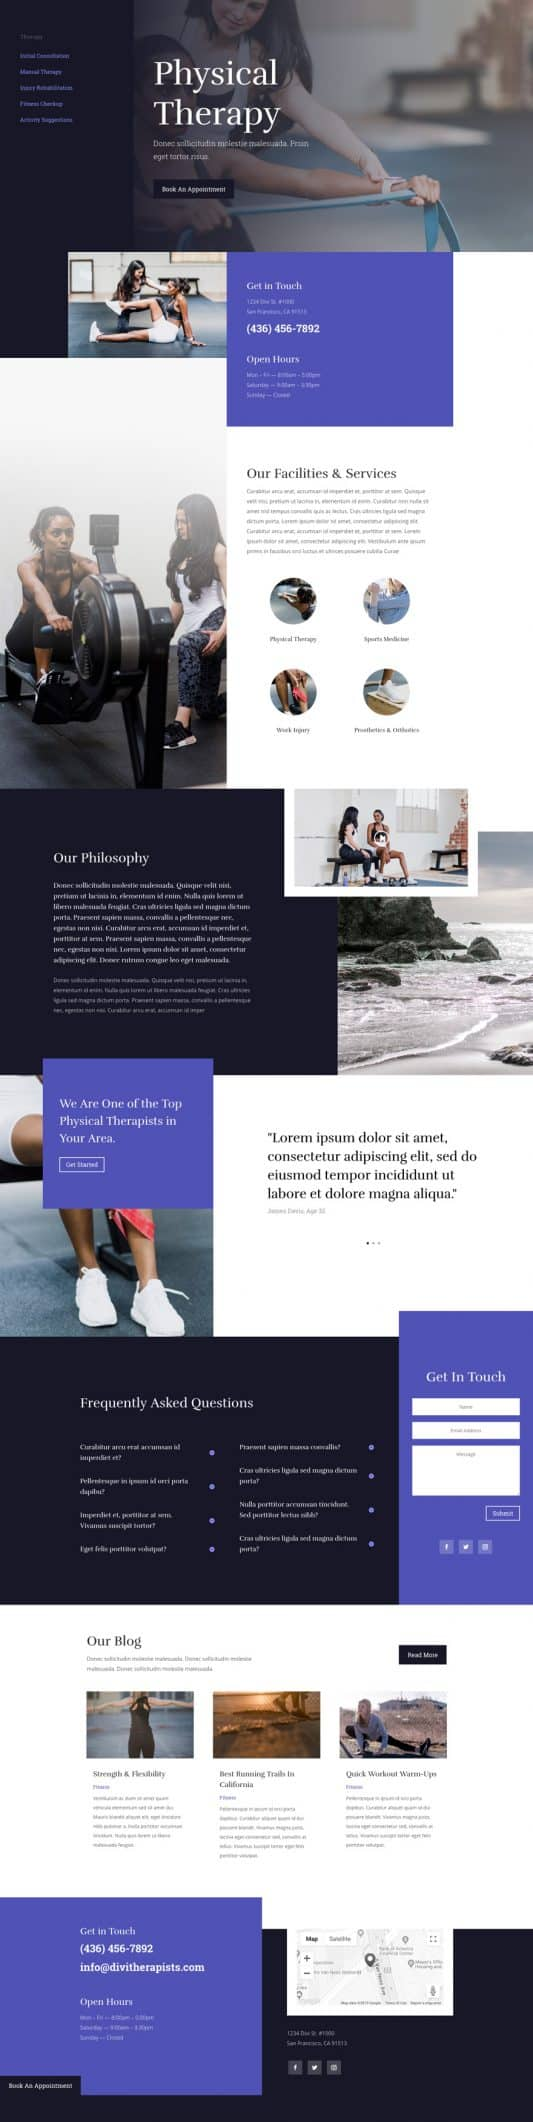 Physical Therapy Web Design 5